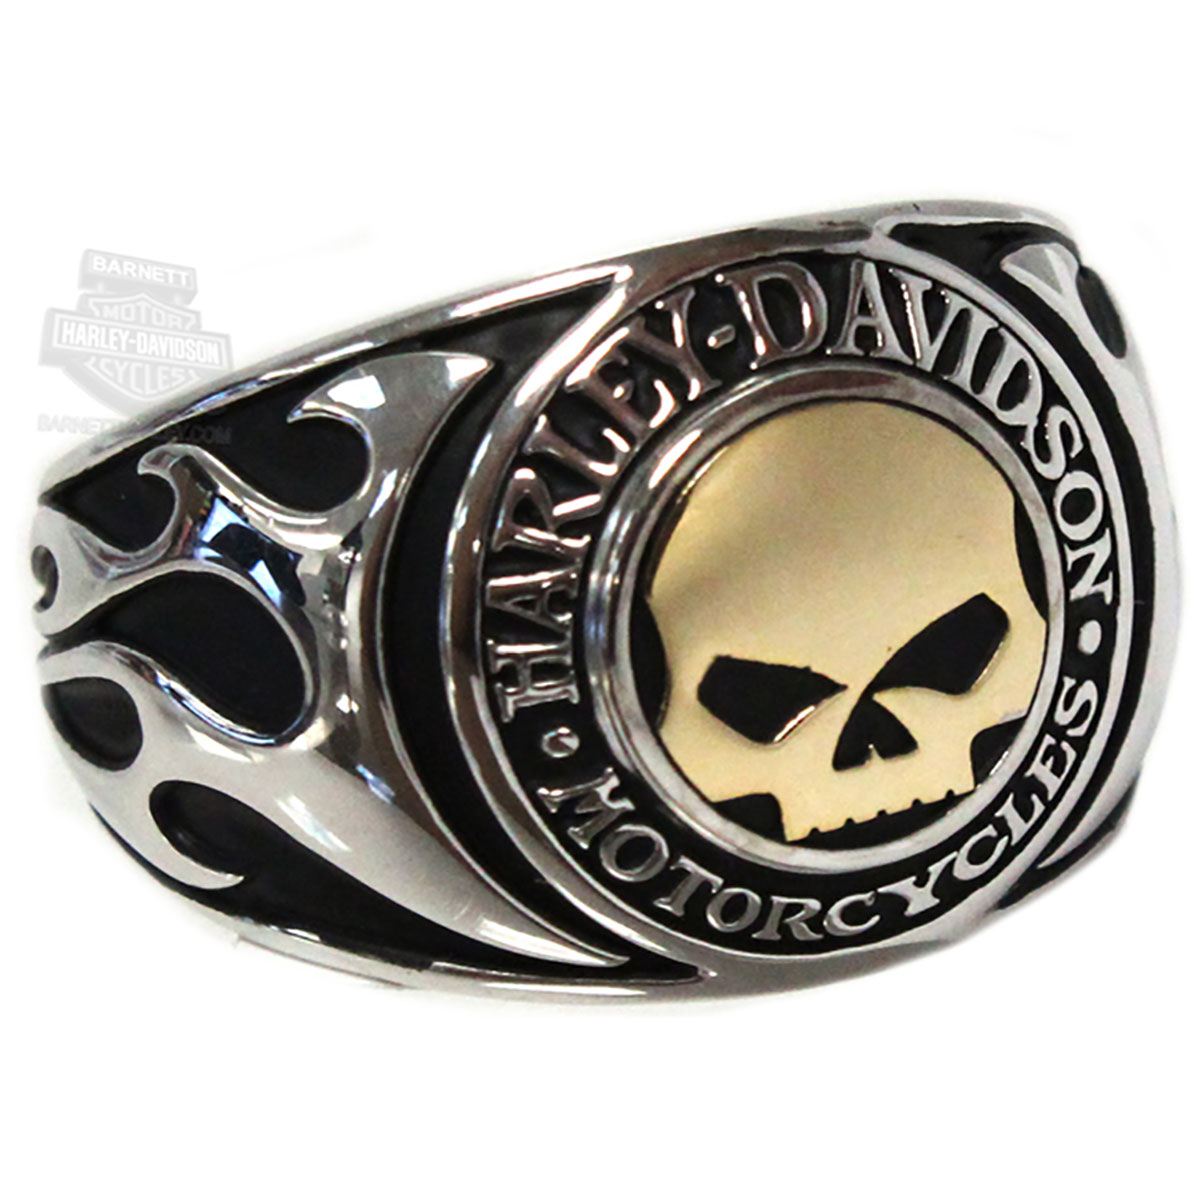 harley davidson mens 925 silver willie g skull flames with 14kt gold inlay - Harley Wedding Rings